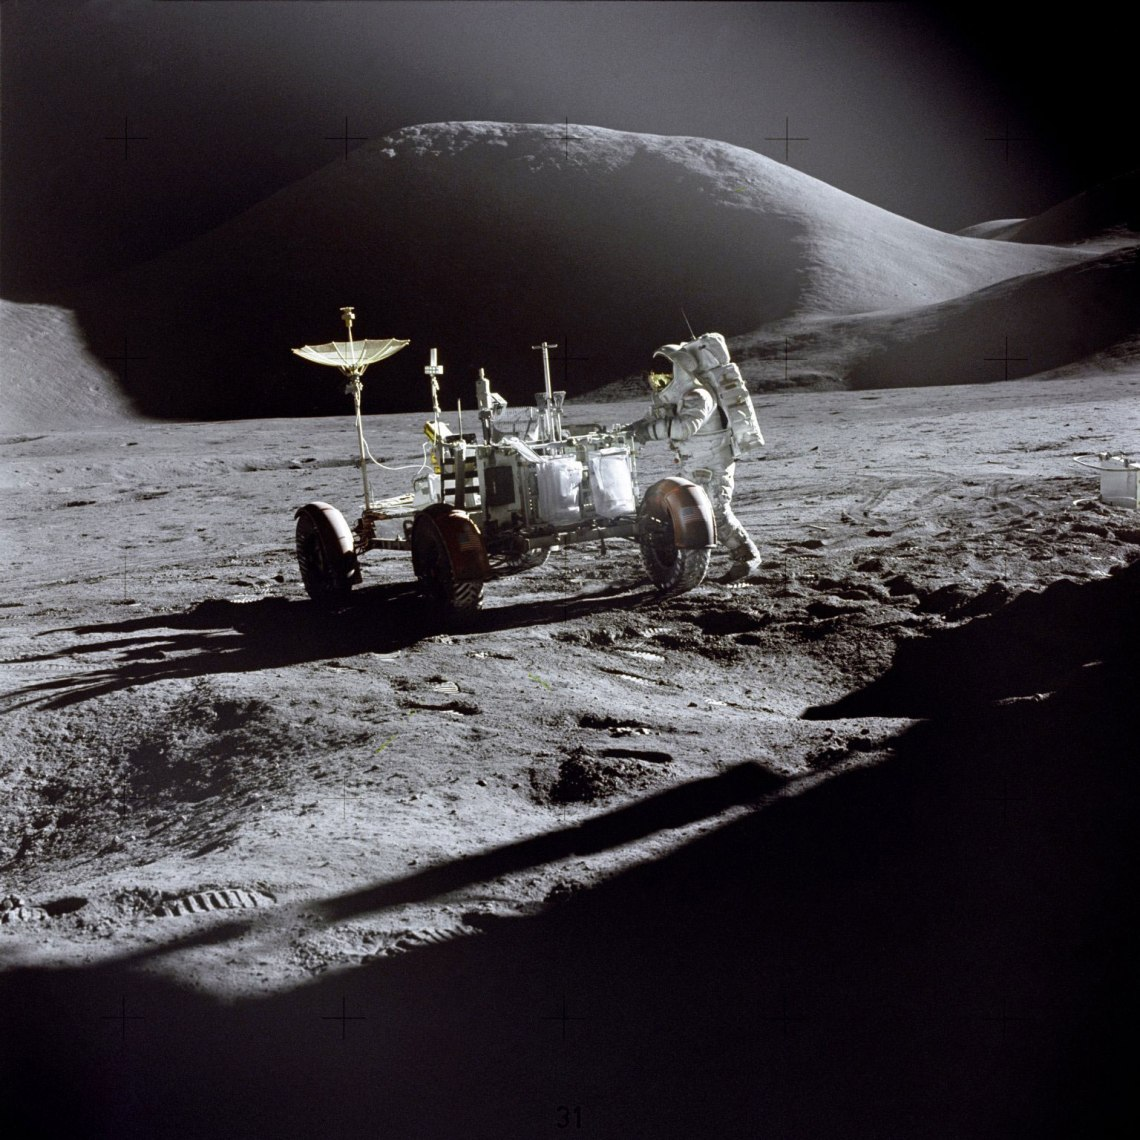 Jim Irwin is photographed beside the Lunar Roving Vehicle, with Mount Hadley in the background. Seen on the back of the Rover are two sample collection bags mounted on the gate, along with the rake, both pairs of tongs, the extension handle with scoop probably attached, and the penetrometer. Credit: NASA